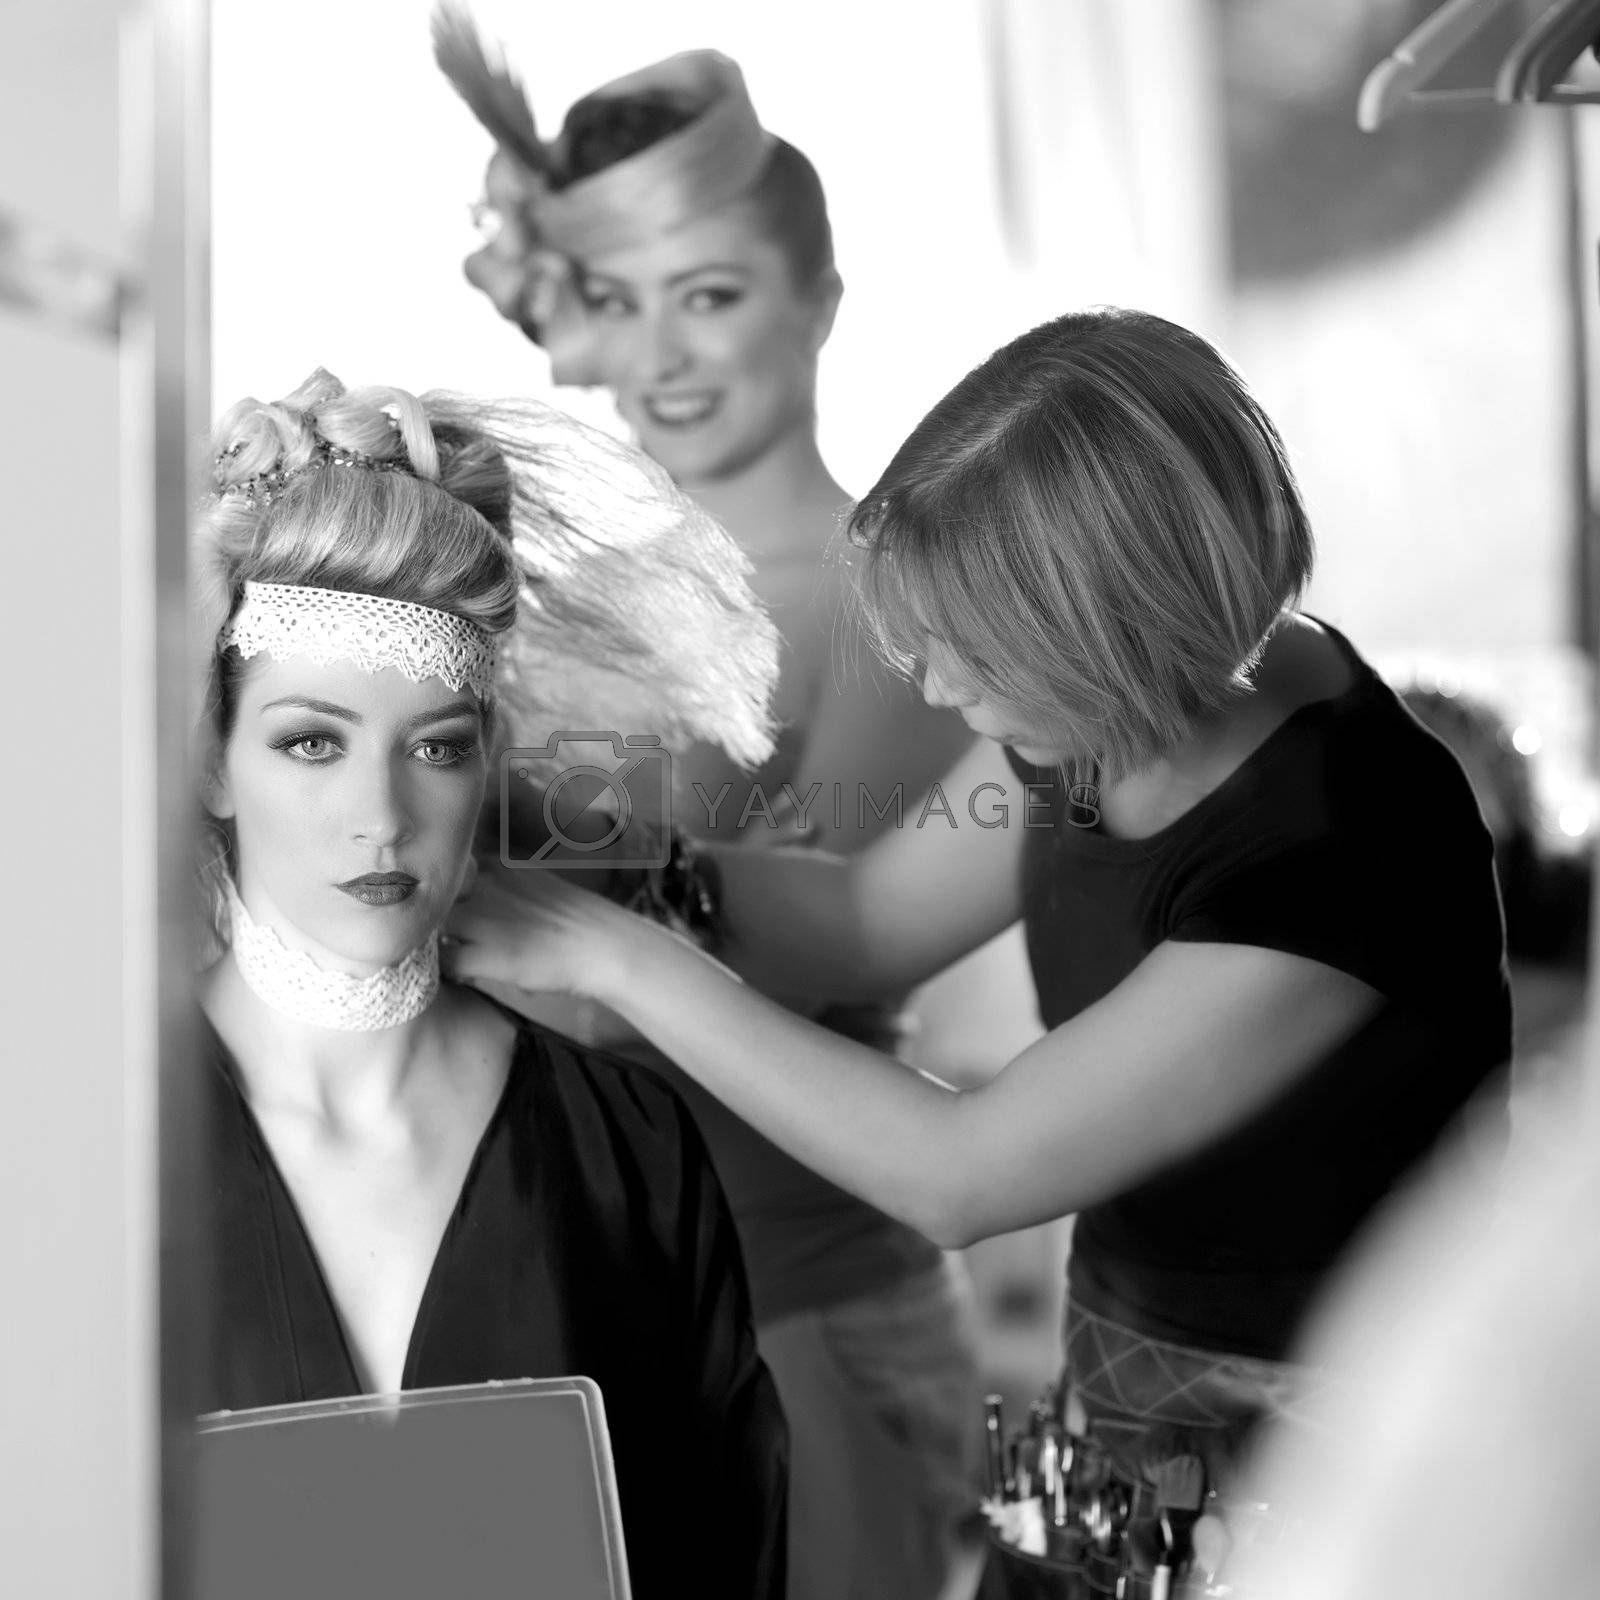 backstage hairdressing fashion with make-up artist by lunamarina